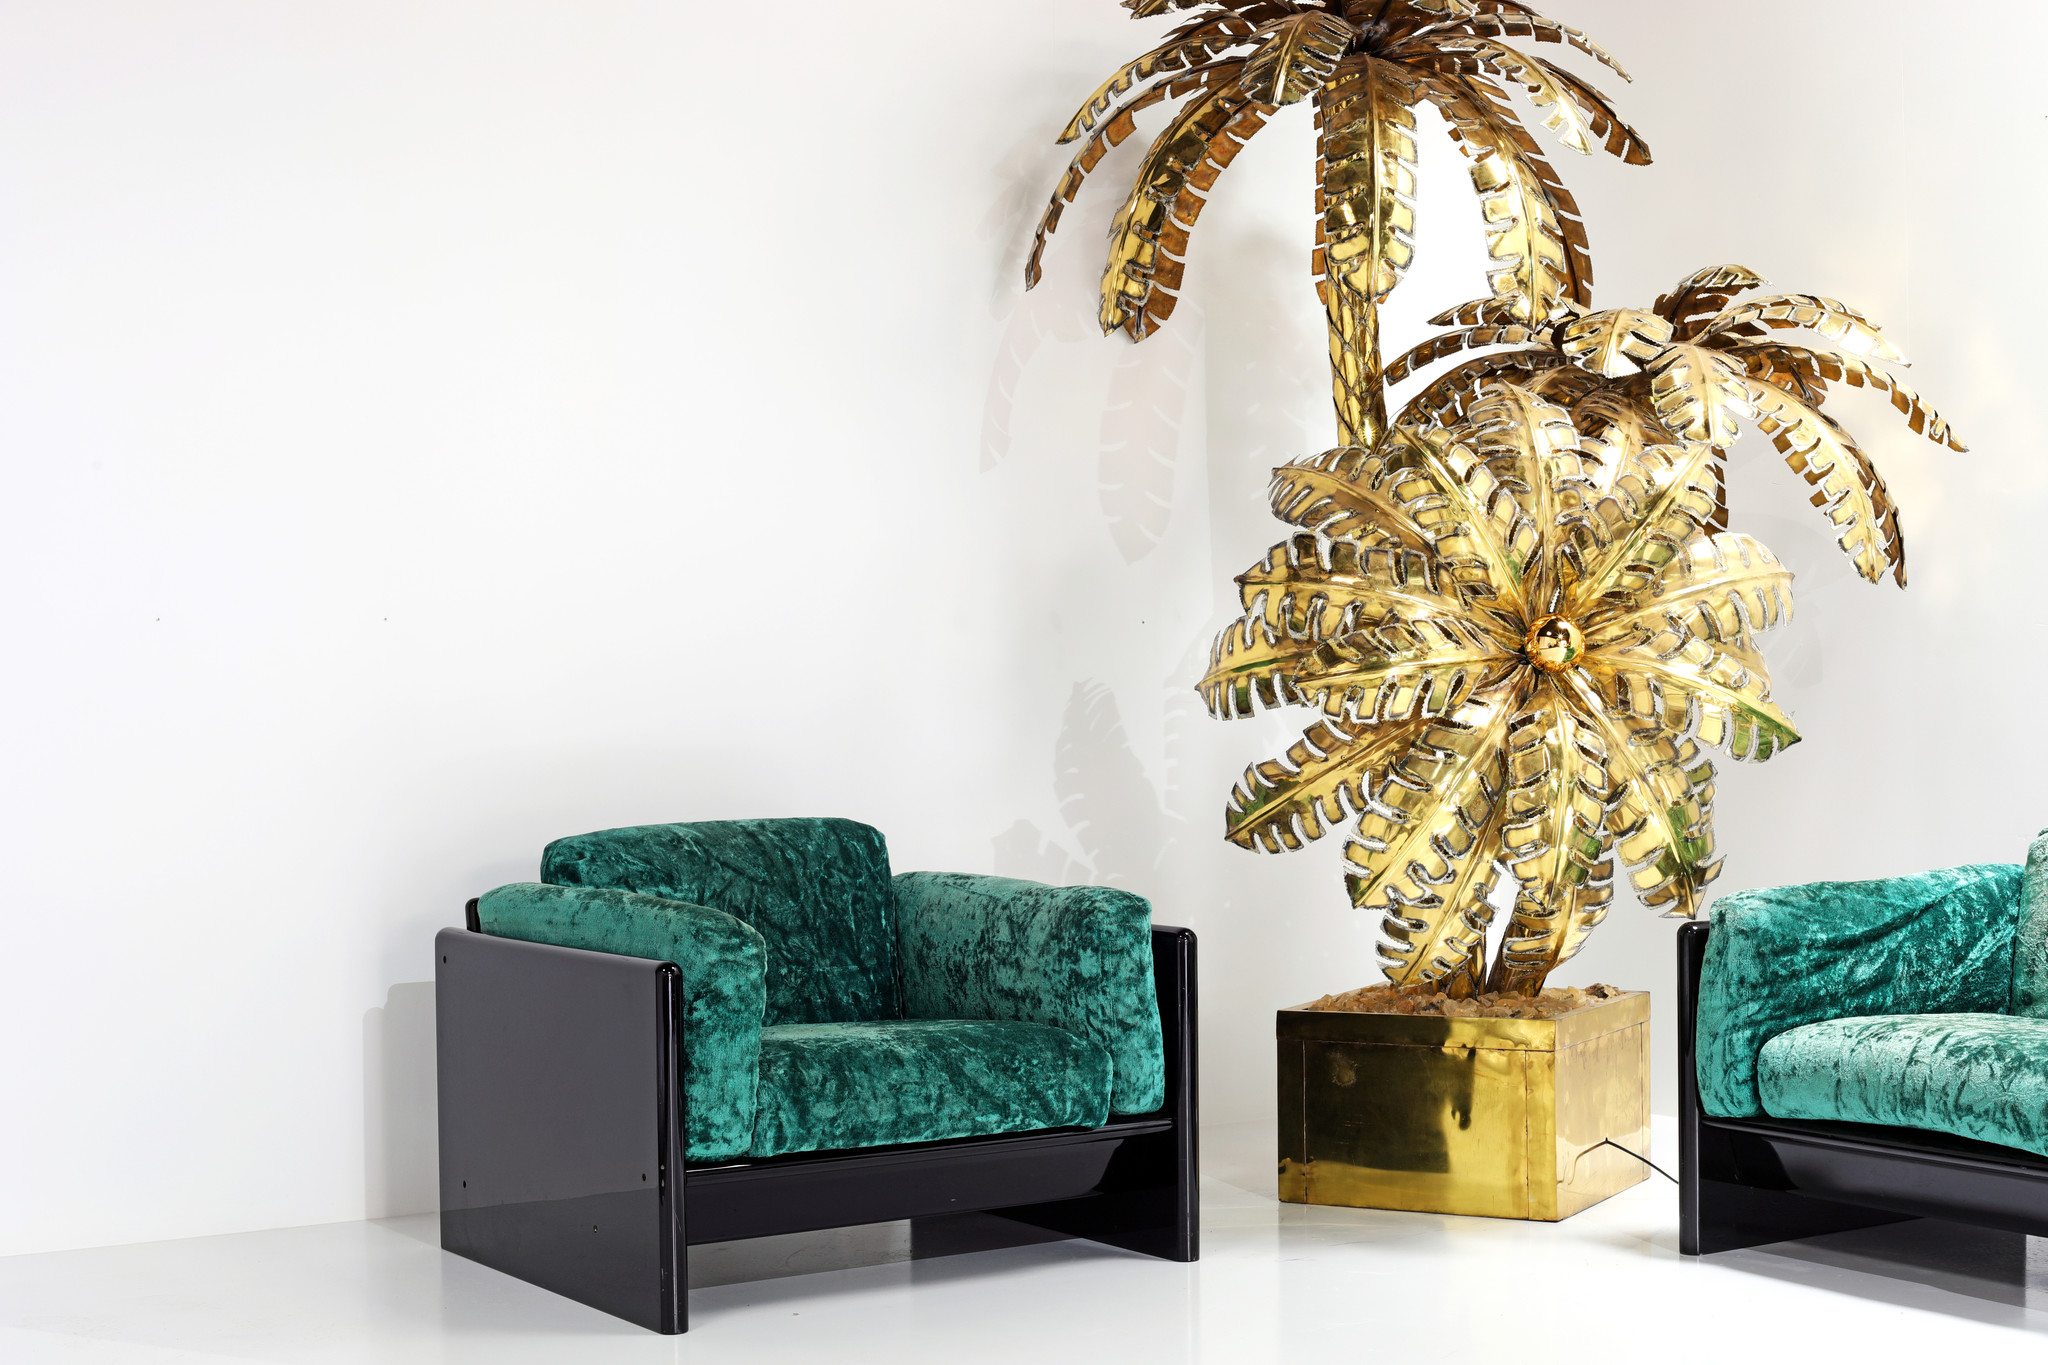 XXL exclusive palm tree lamp in brass